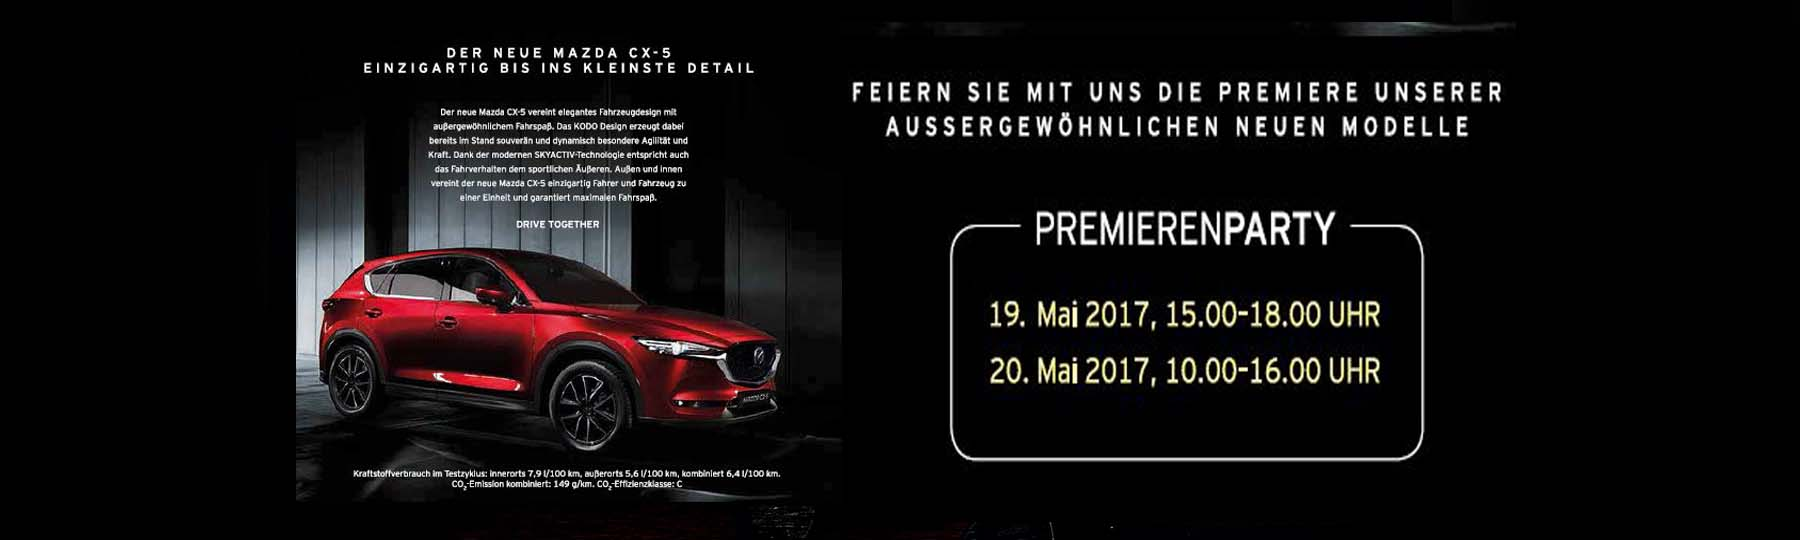 mahda autohaus mueller bedburg ausstellung mazda cx 5 kompakt suv autohaus m ller bedburg de. Black Bedroom Furniture Sets. Home Design Ideas